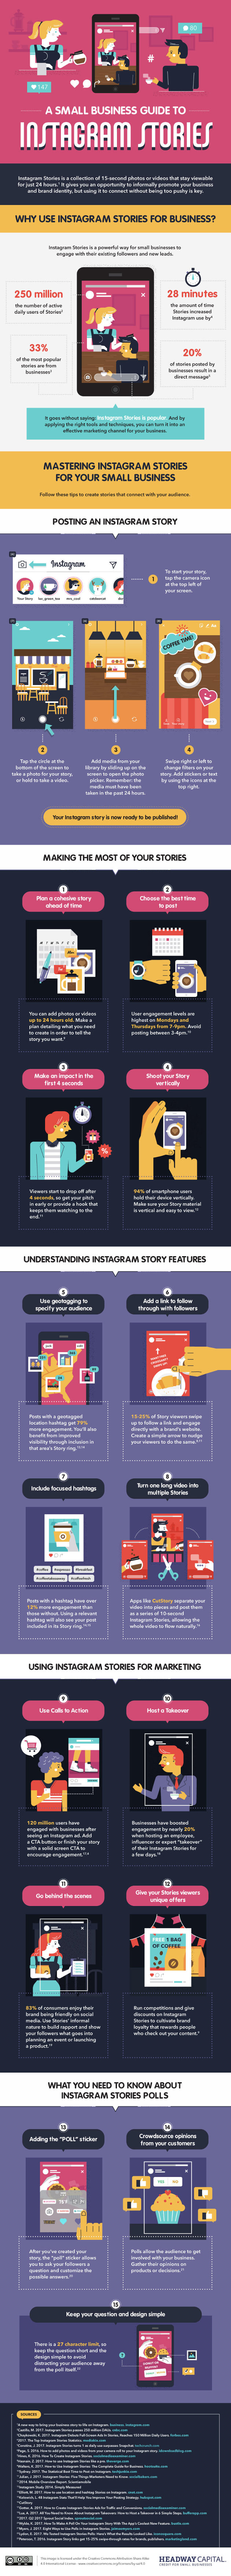 Instagram Stories Guide for Small Businesses   Marketing Infographic To see how to get started with Instagram Stories for your business  check  out the infographic